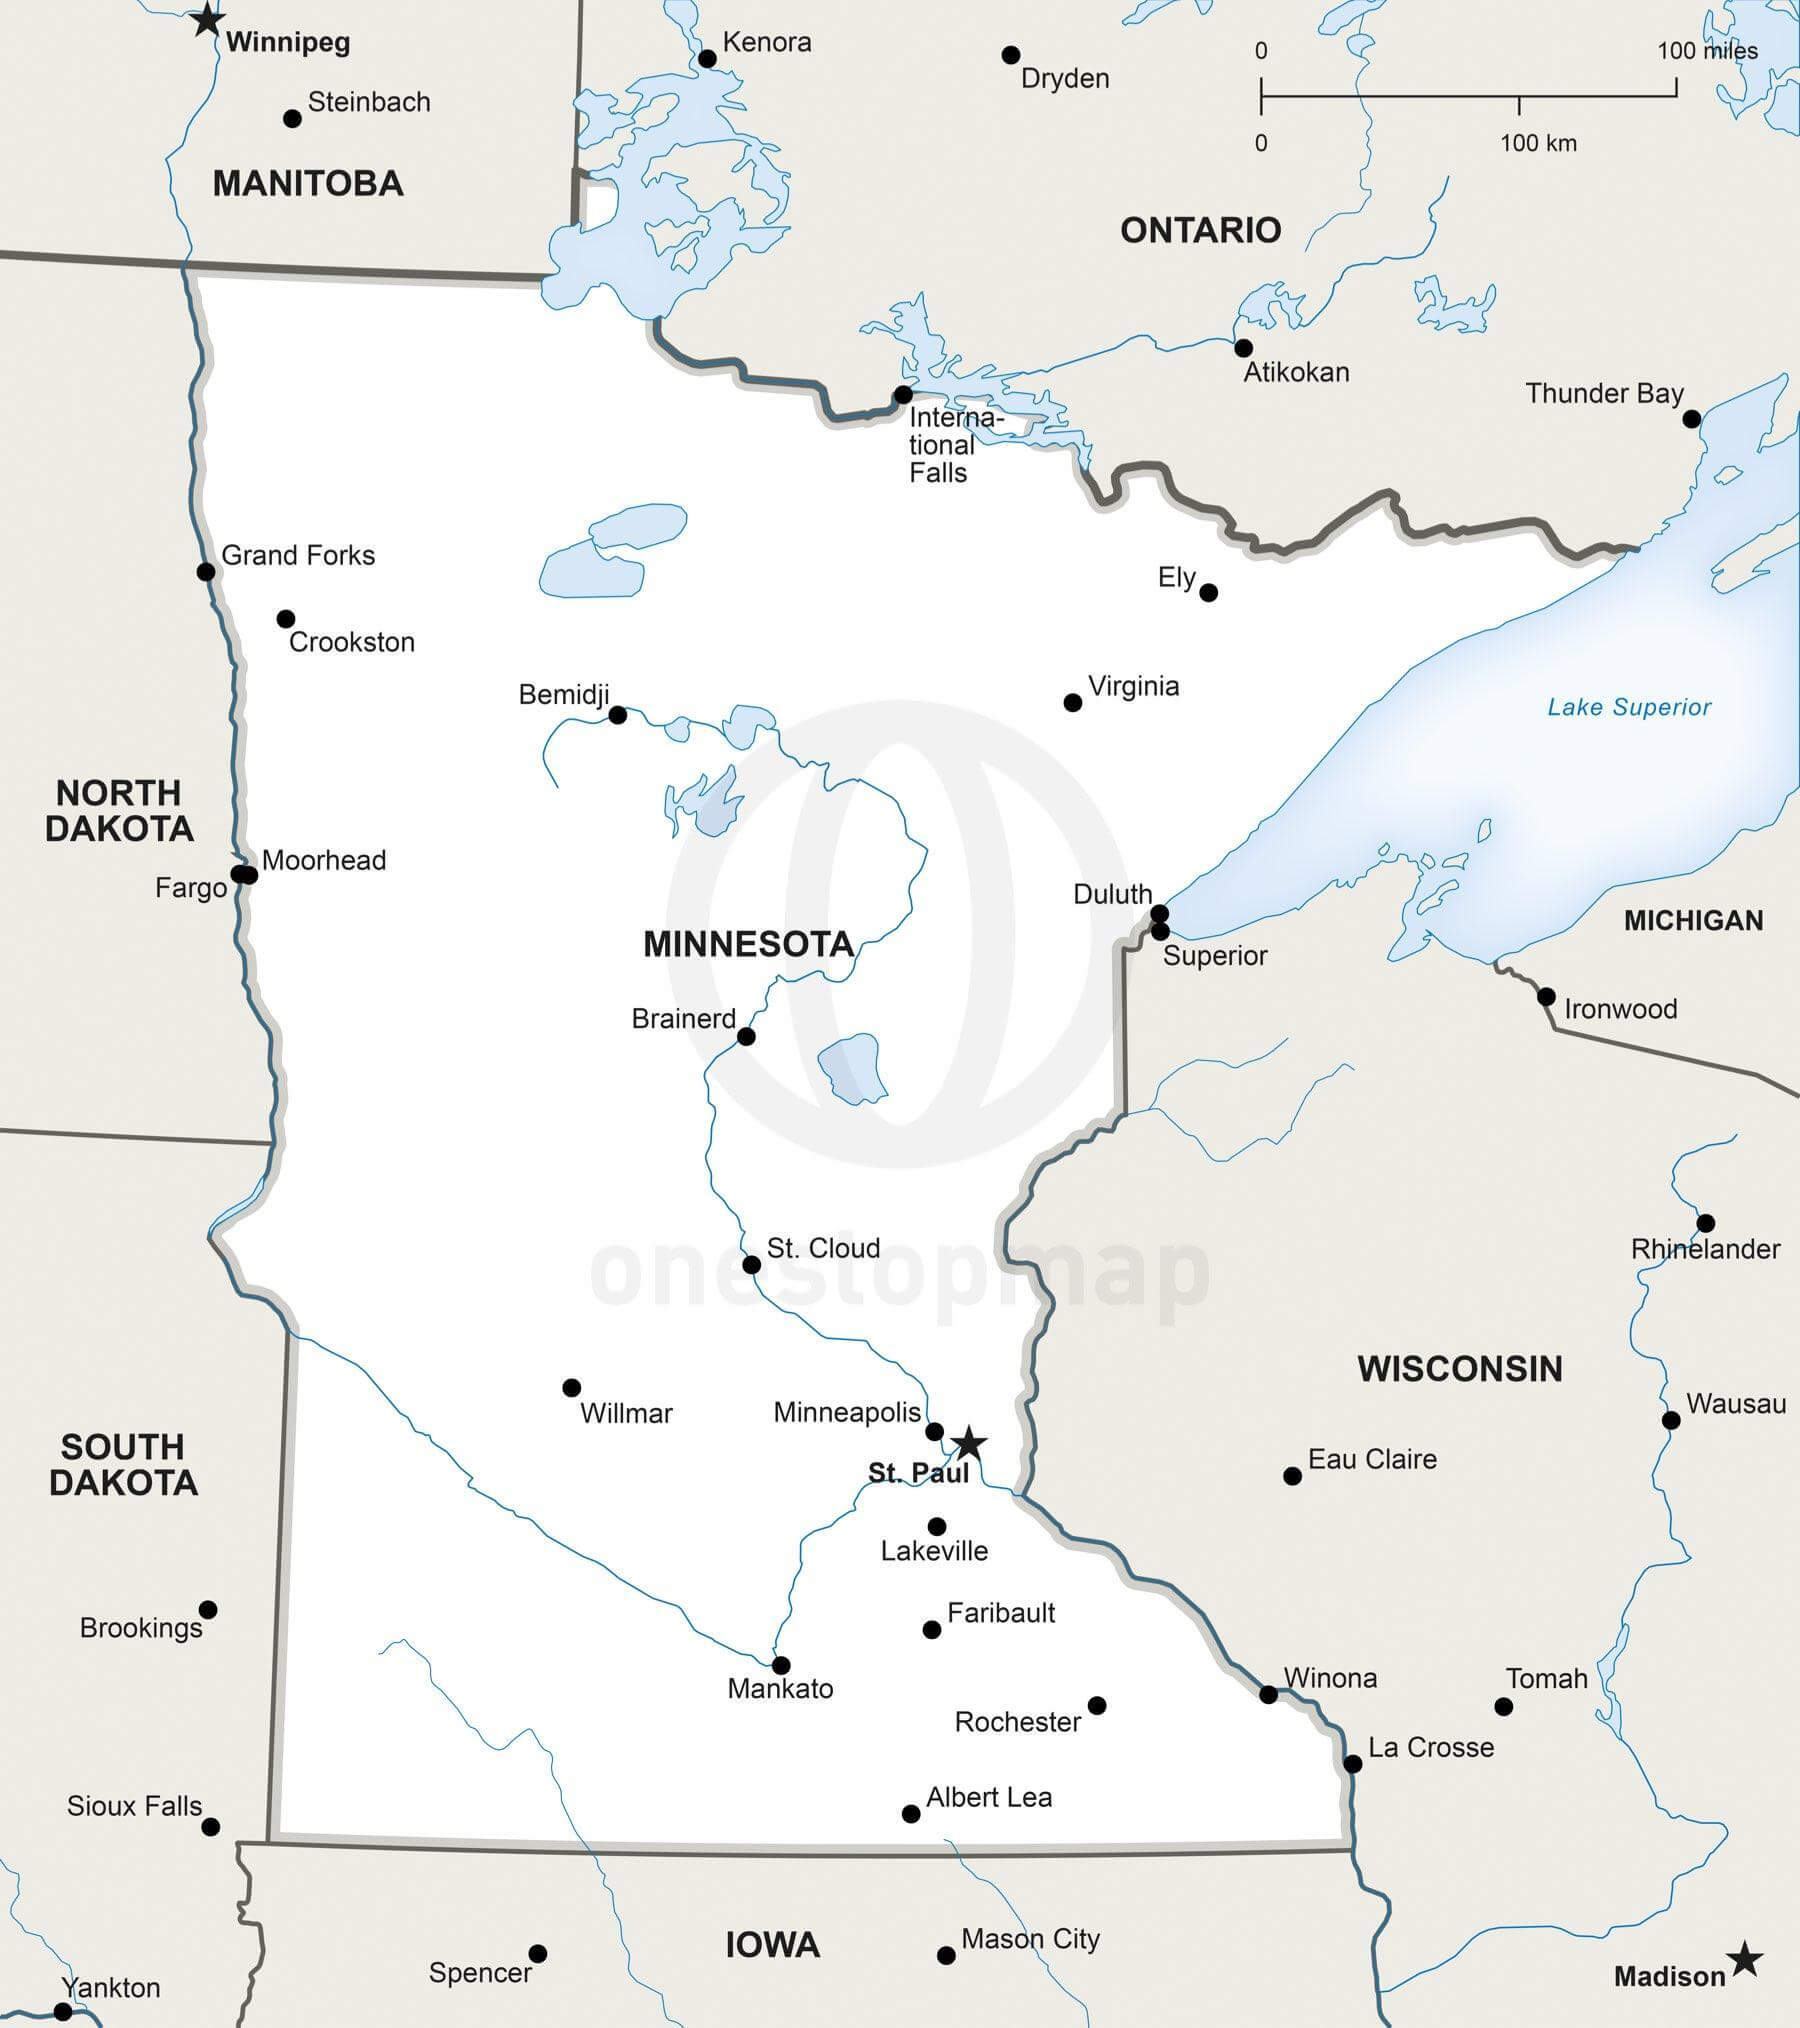 photograph regarding Printable Maps of Minnesota identified as Map of Minnesota political